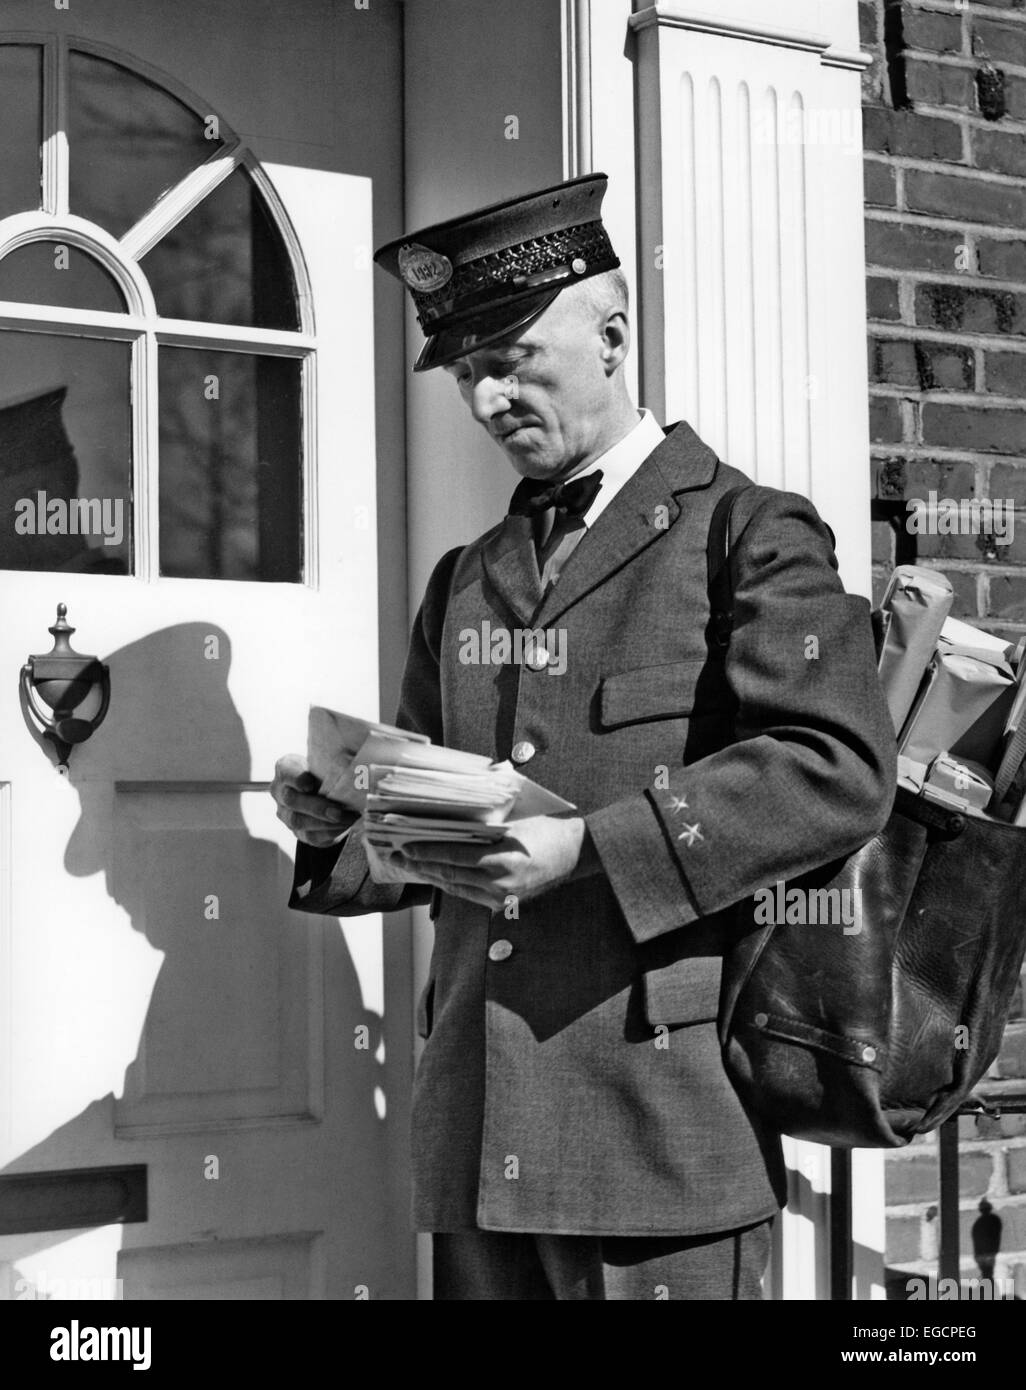 1930s 1940s POSTAL SERVICE UNIFORMED MAILMAN DELIVERING MAIL STANDING ON DOORSTEP SORTING LETTERS Stock Photo